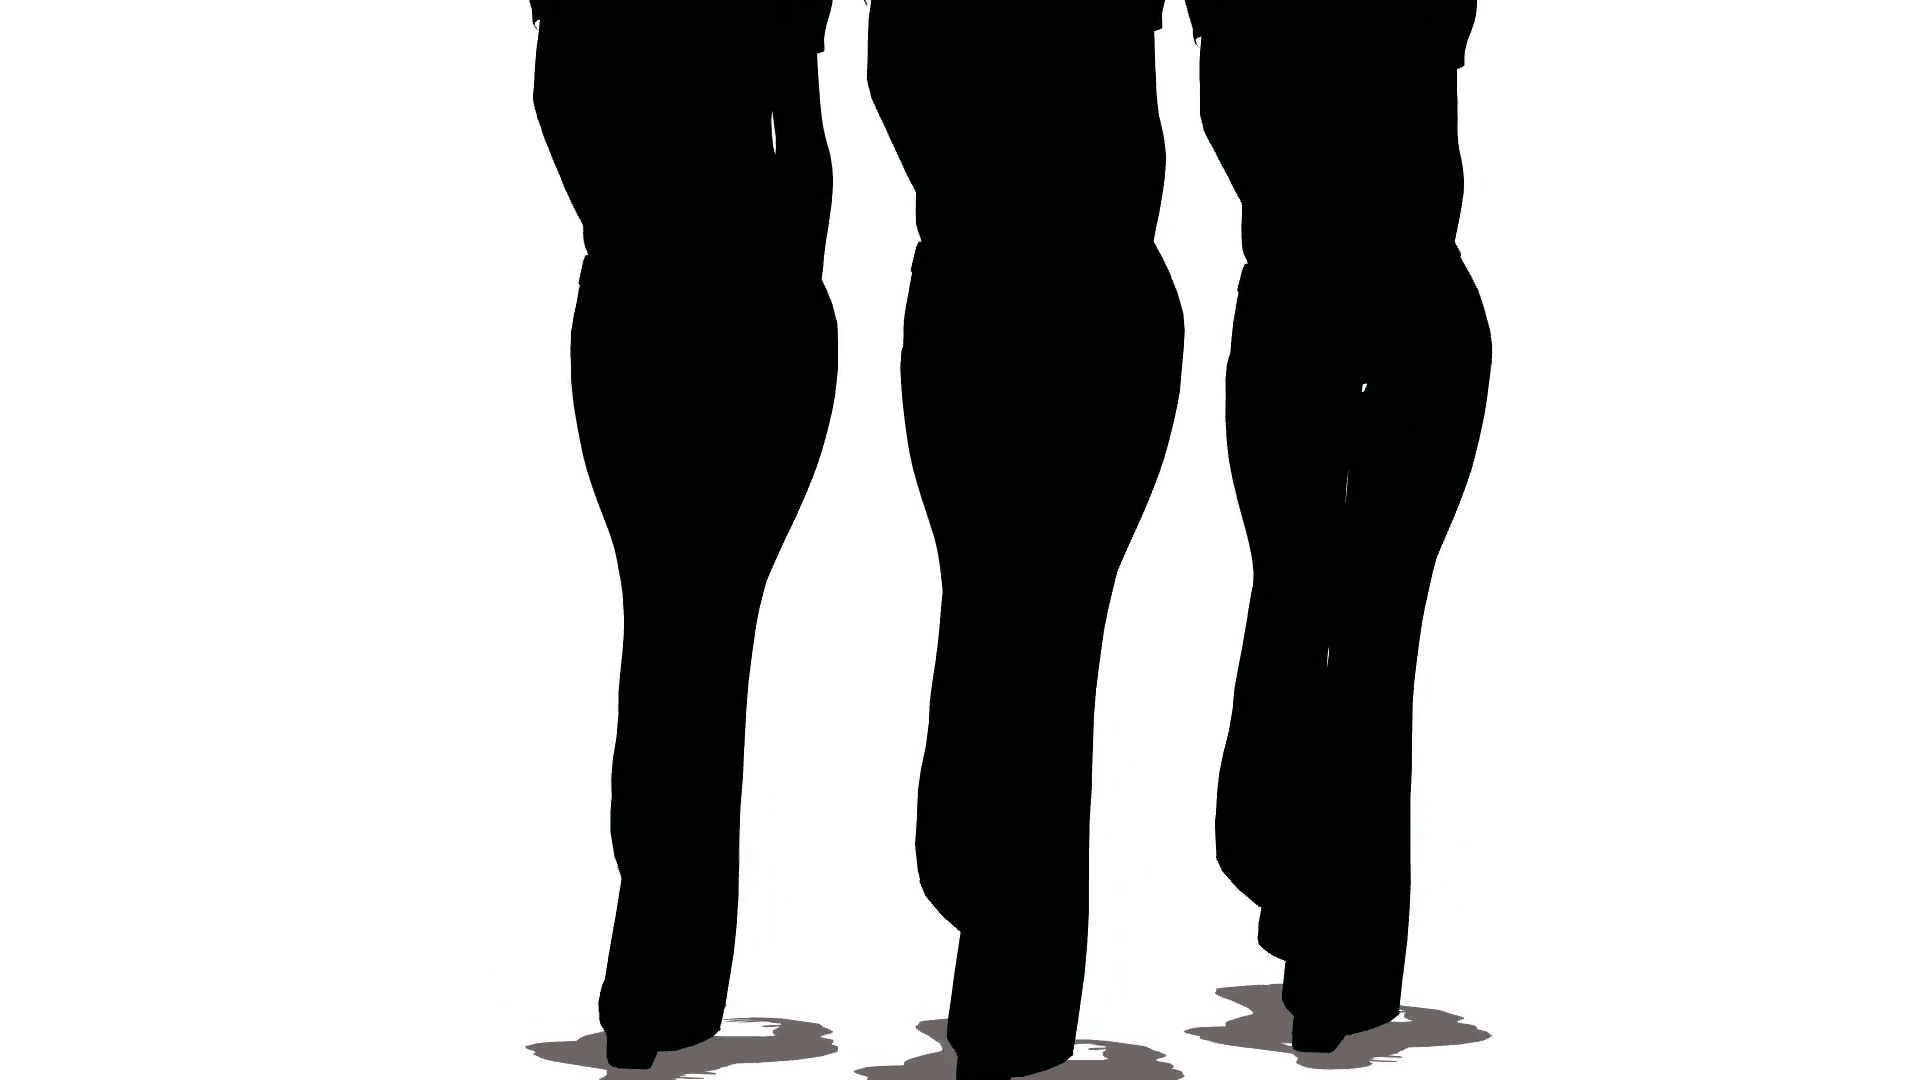 1920x1080 Silhouettes Of Three Women Models Of Black Colors Go On White